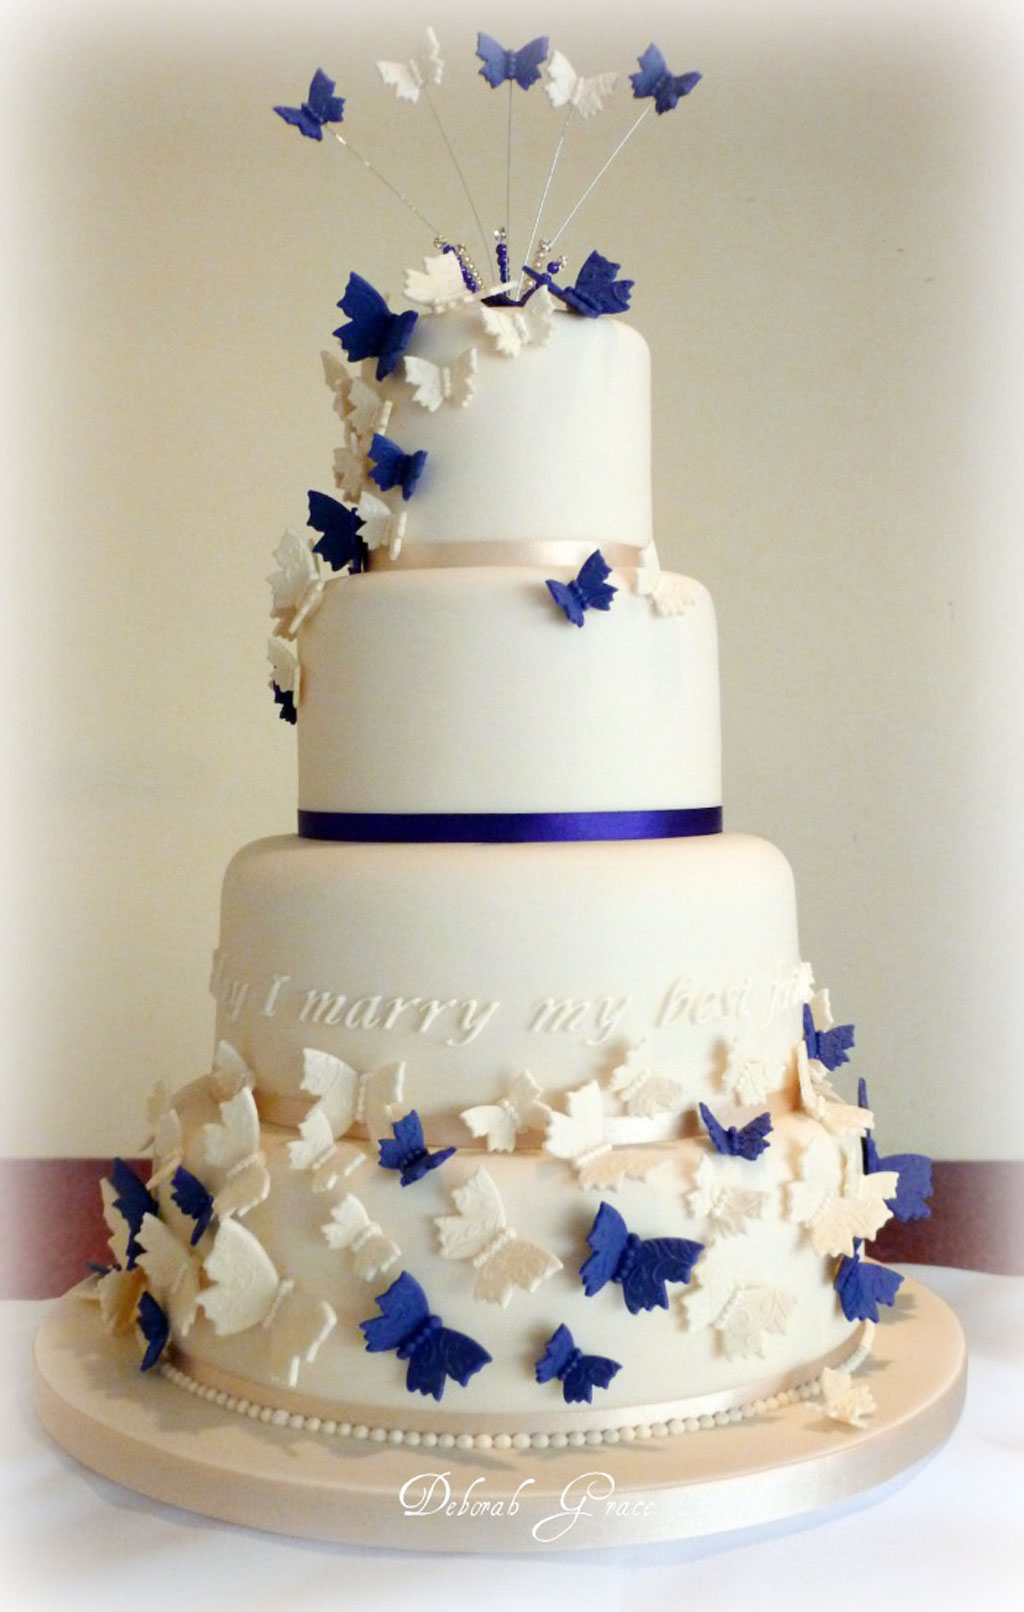 Cake Decorating Ideas For Weddings : Butterfly Wedding Cakes Decoration Wedding Cake - Cake ...